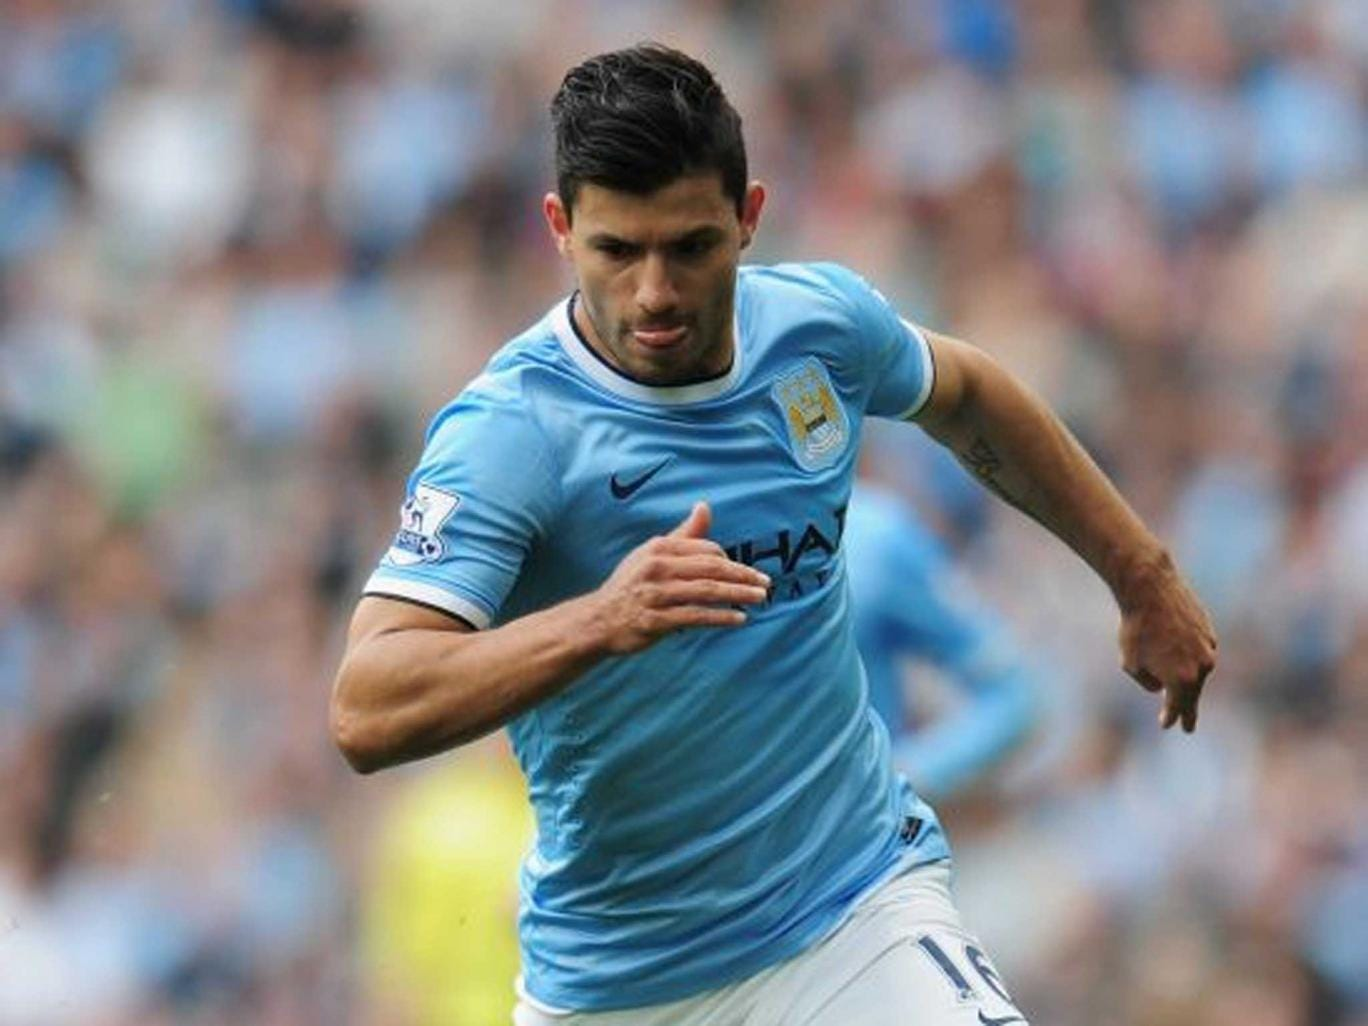 Ordinarily Pellegrini would like to ease Aguero back into action after a month out, but this may not be an option